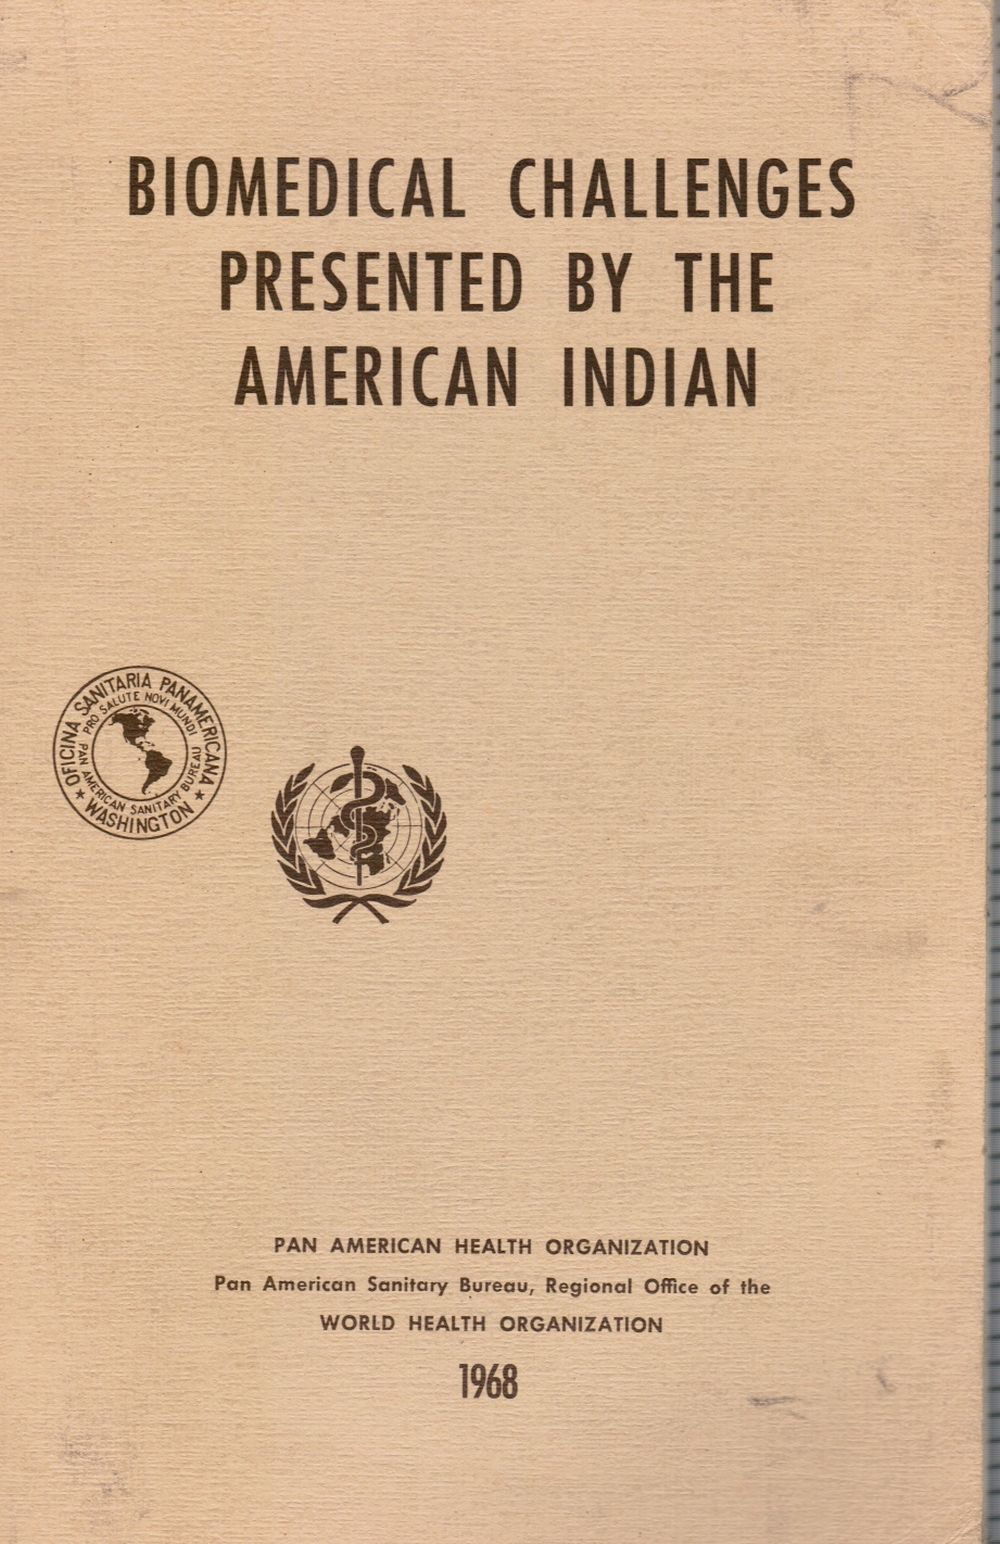 Image for Biomedical challenges presented by the American Indian; proceedings of the special session held during the seventh meeting of the PAHO Advisory Committee on Medical Research, 25 June 1968